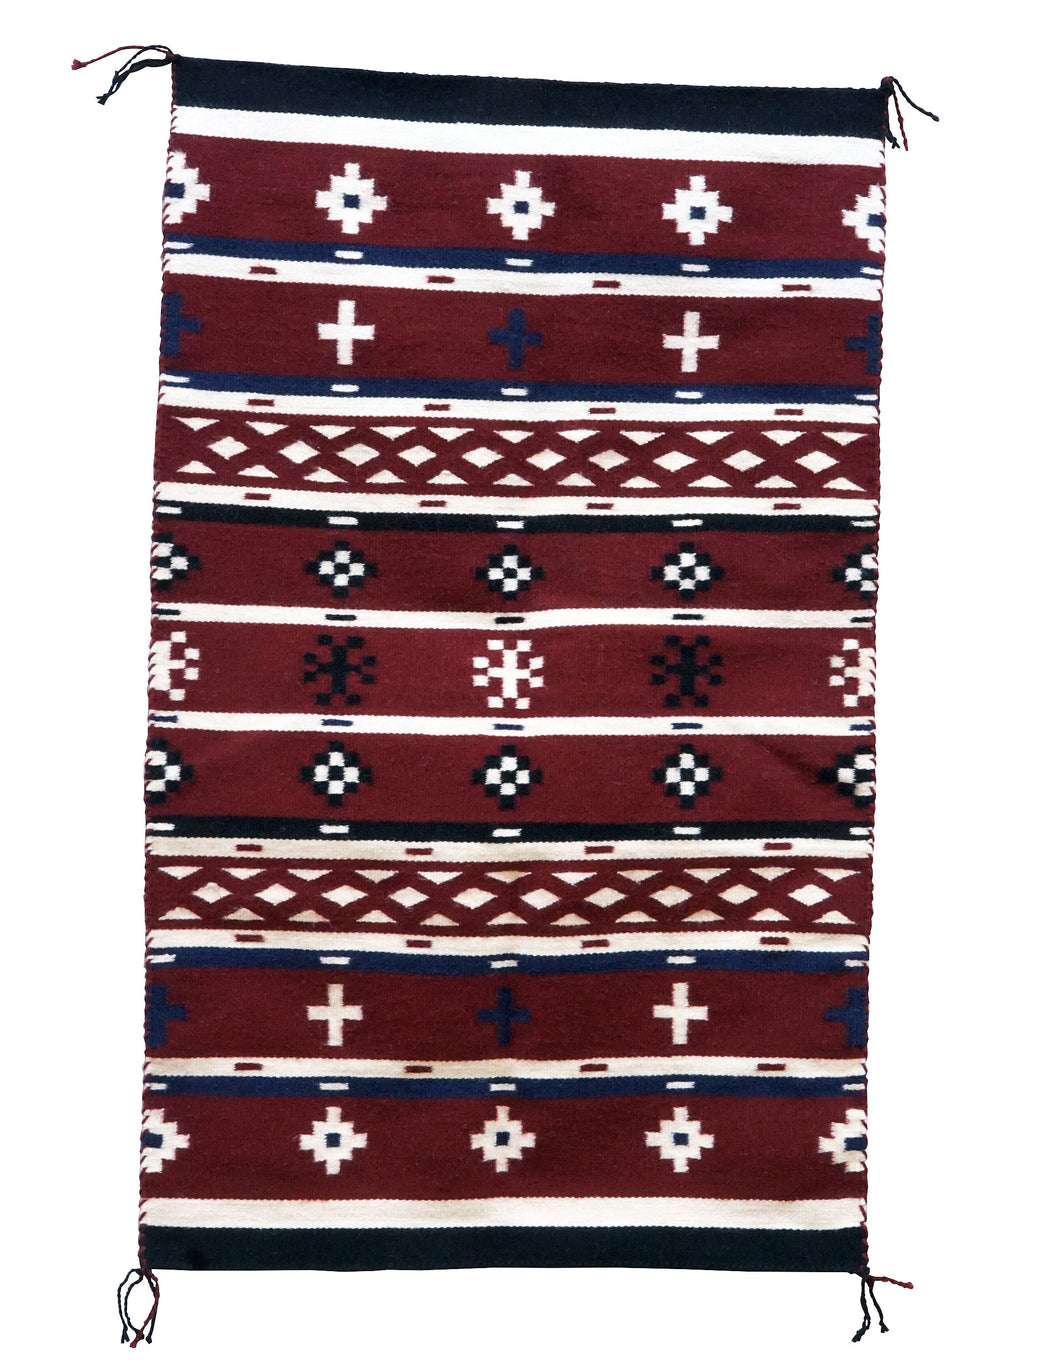 Bessie Yazzie, Chief Blanket, Contemporary, Navajo Handwoven, 44